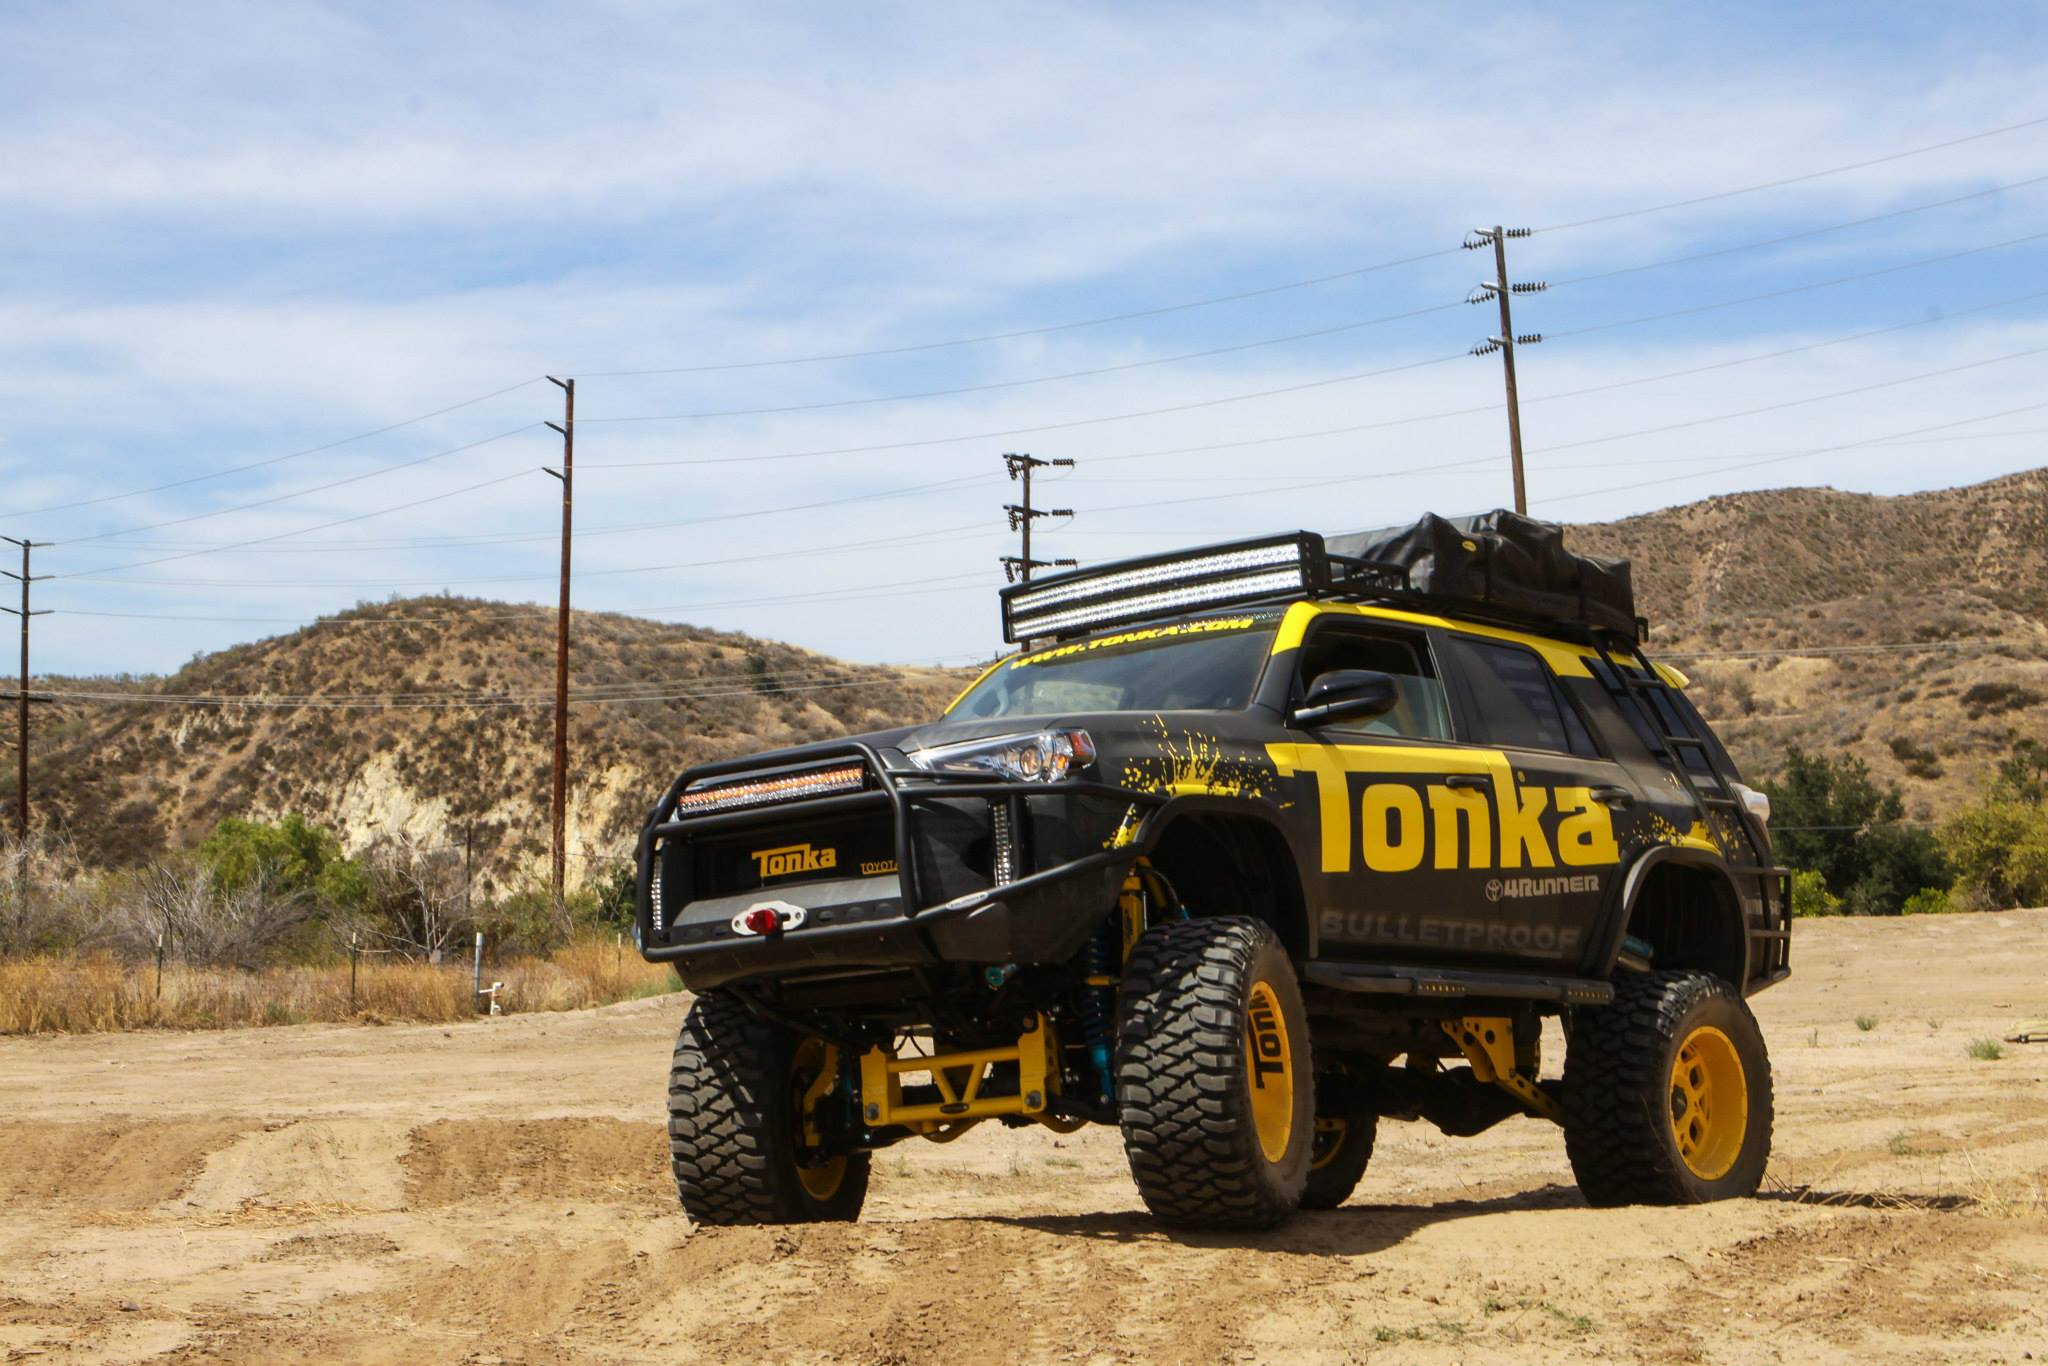 Toyota 4runner Turned Tonka Toy Requires A Big Sand Box